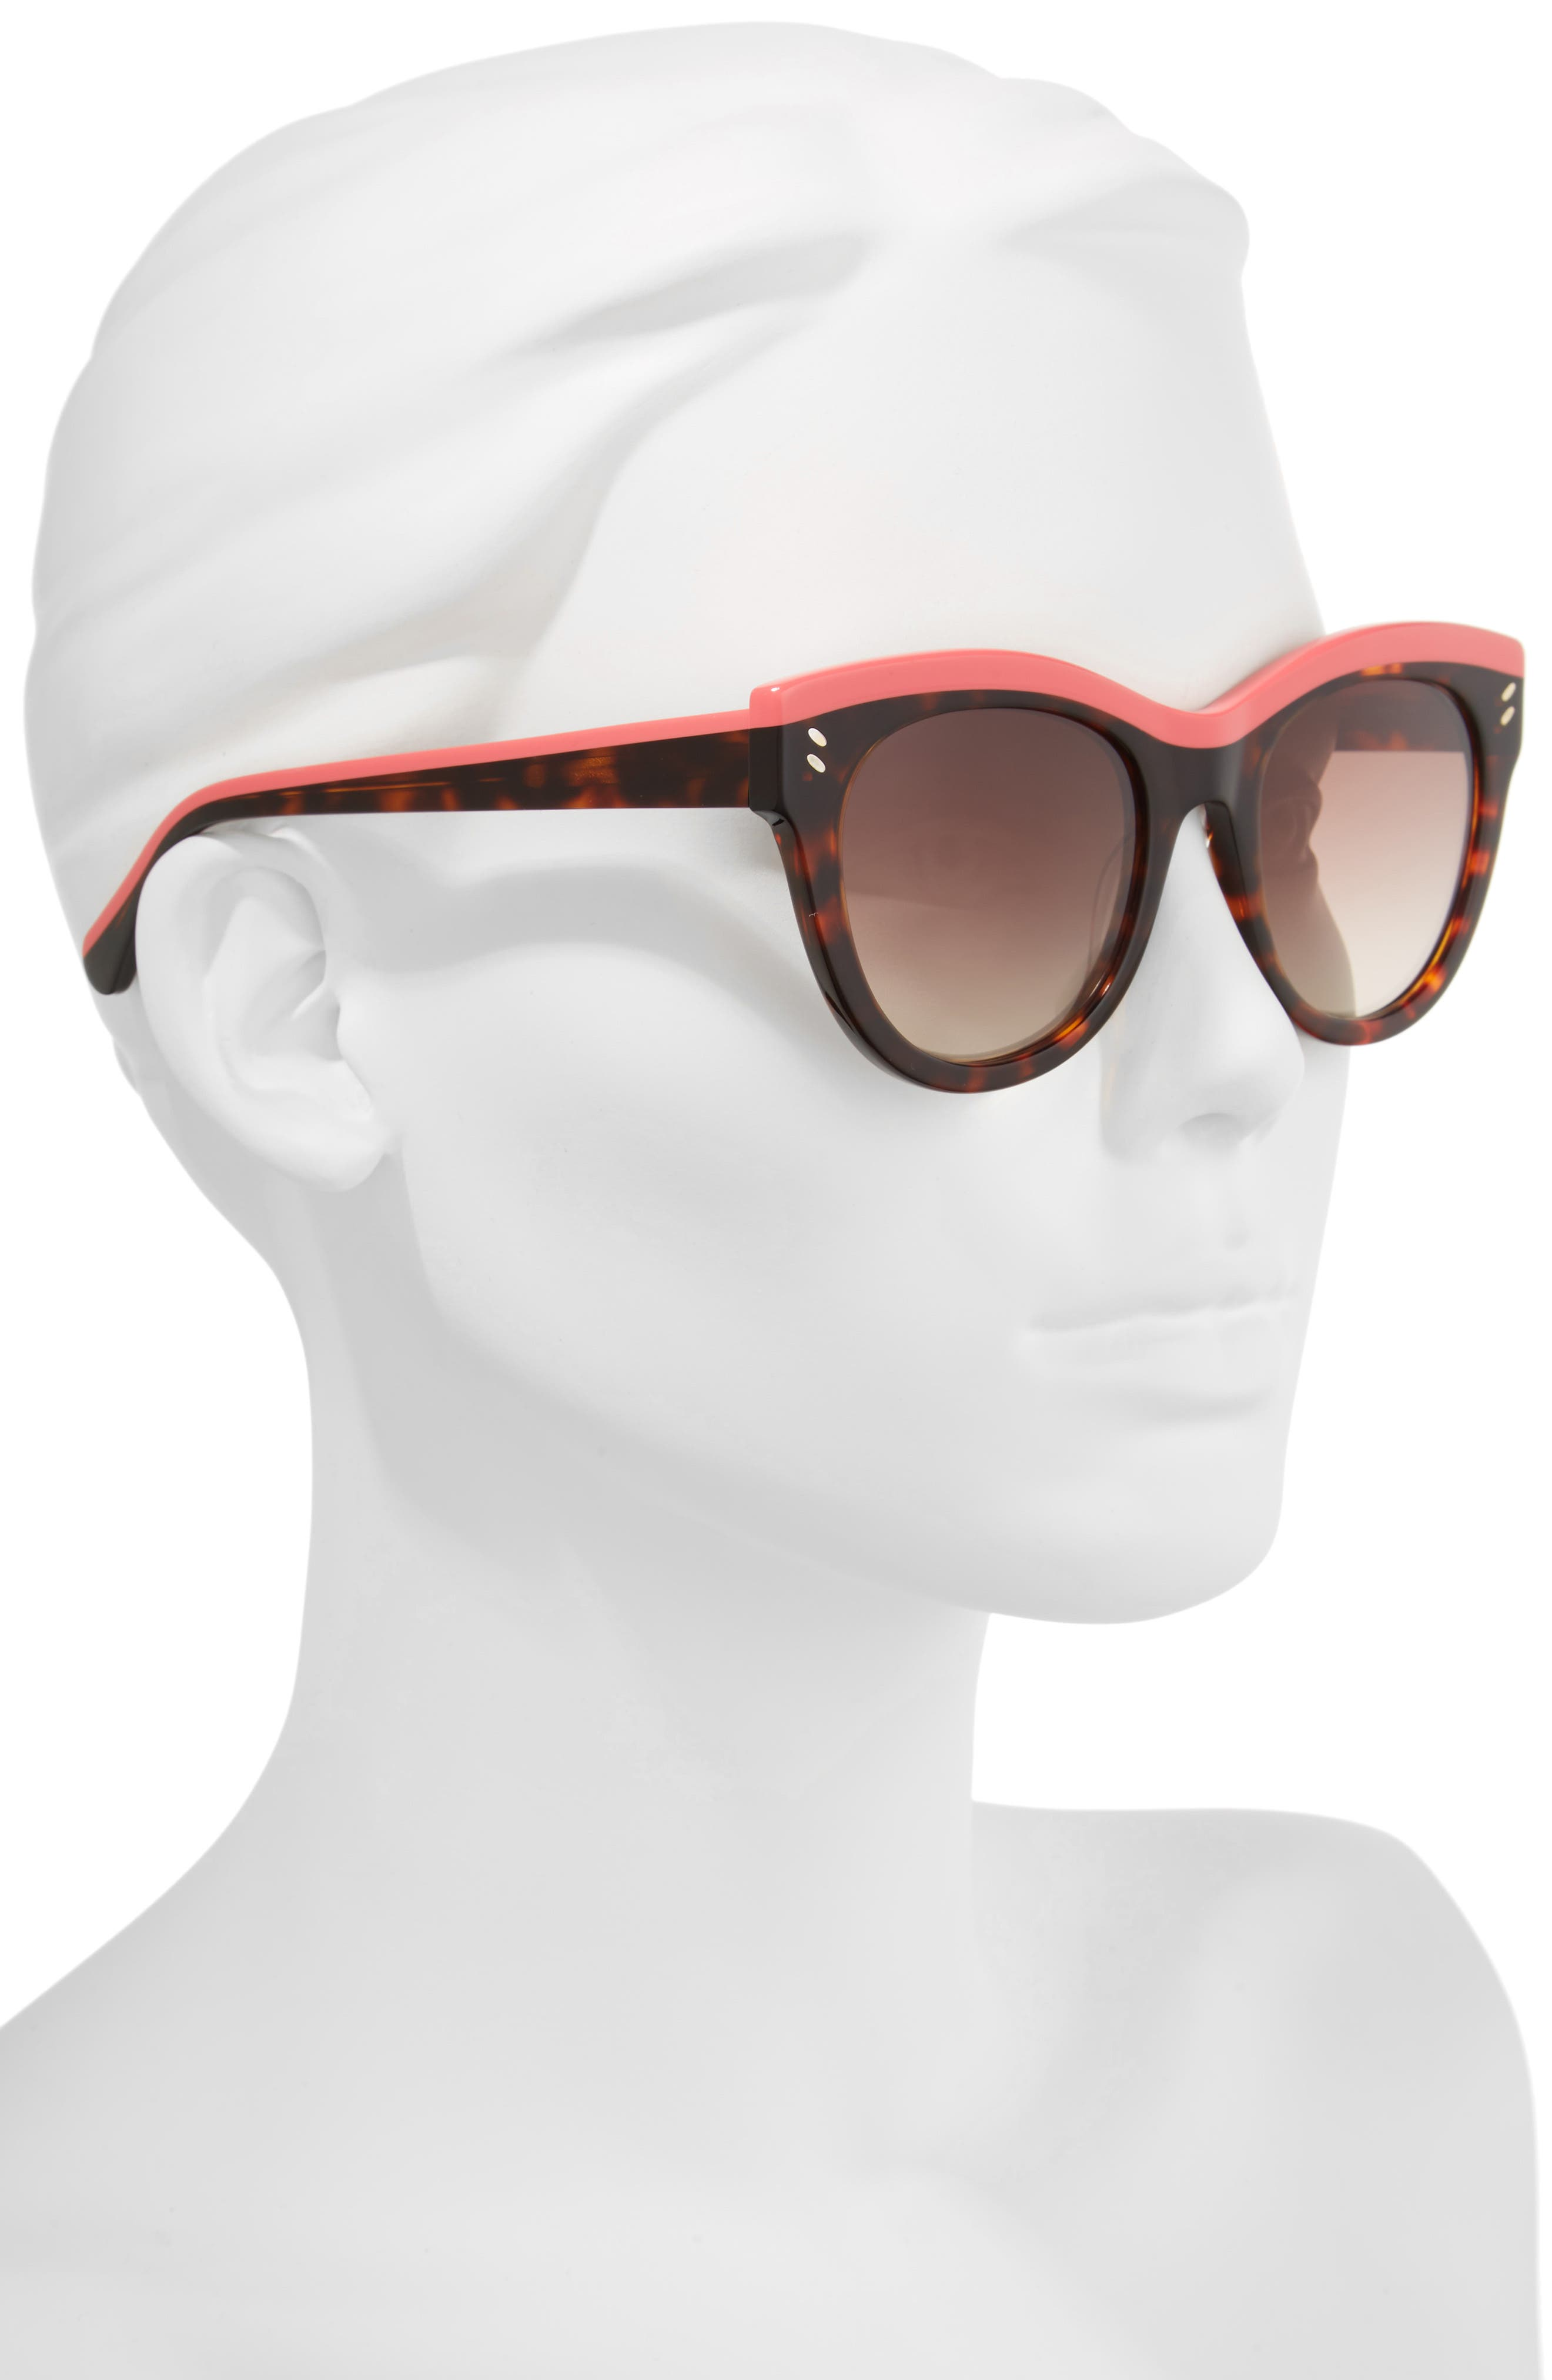 51mm Cat Eye Sunglasses,                             Alternate thumbnail 6, color,